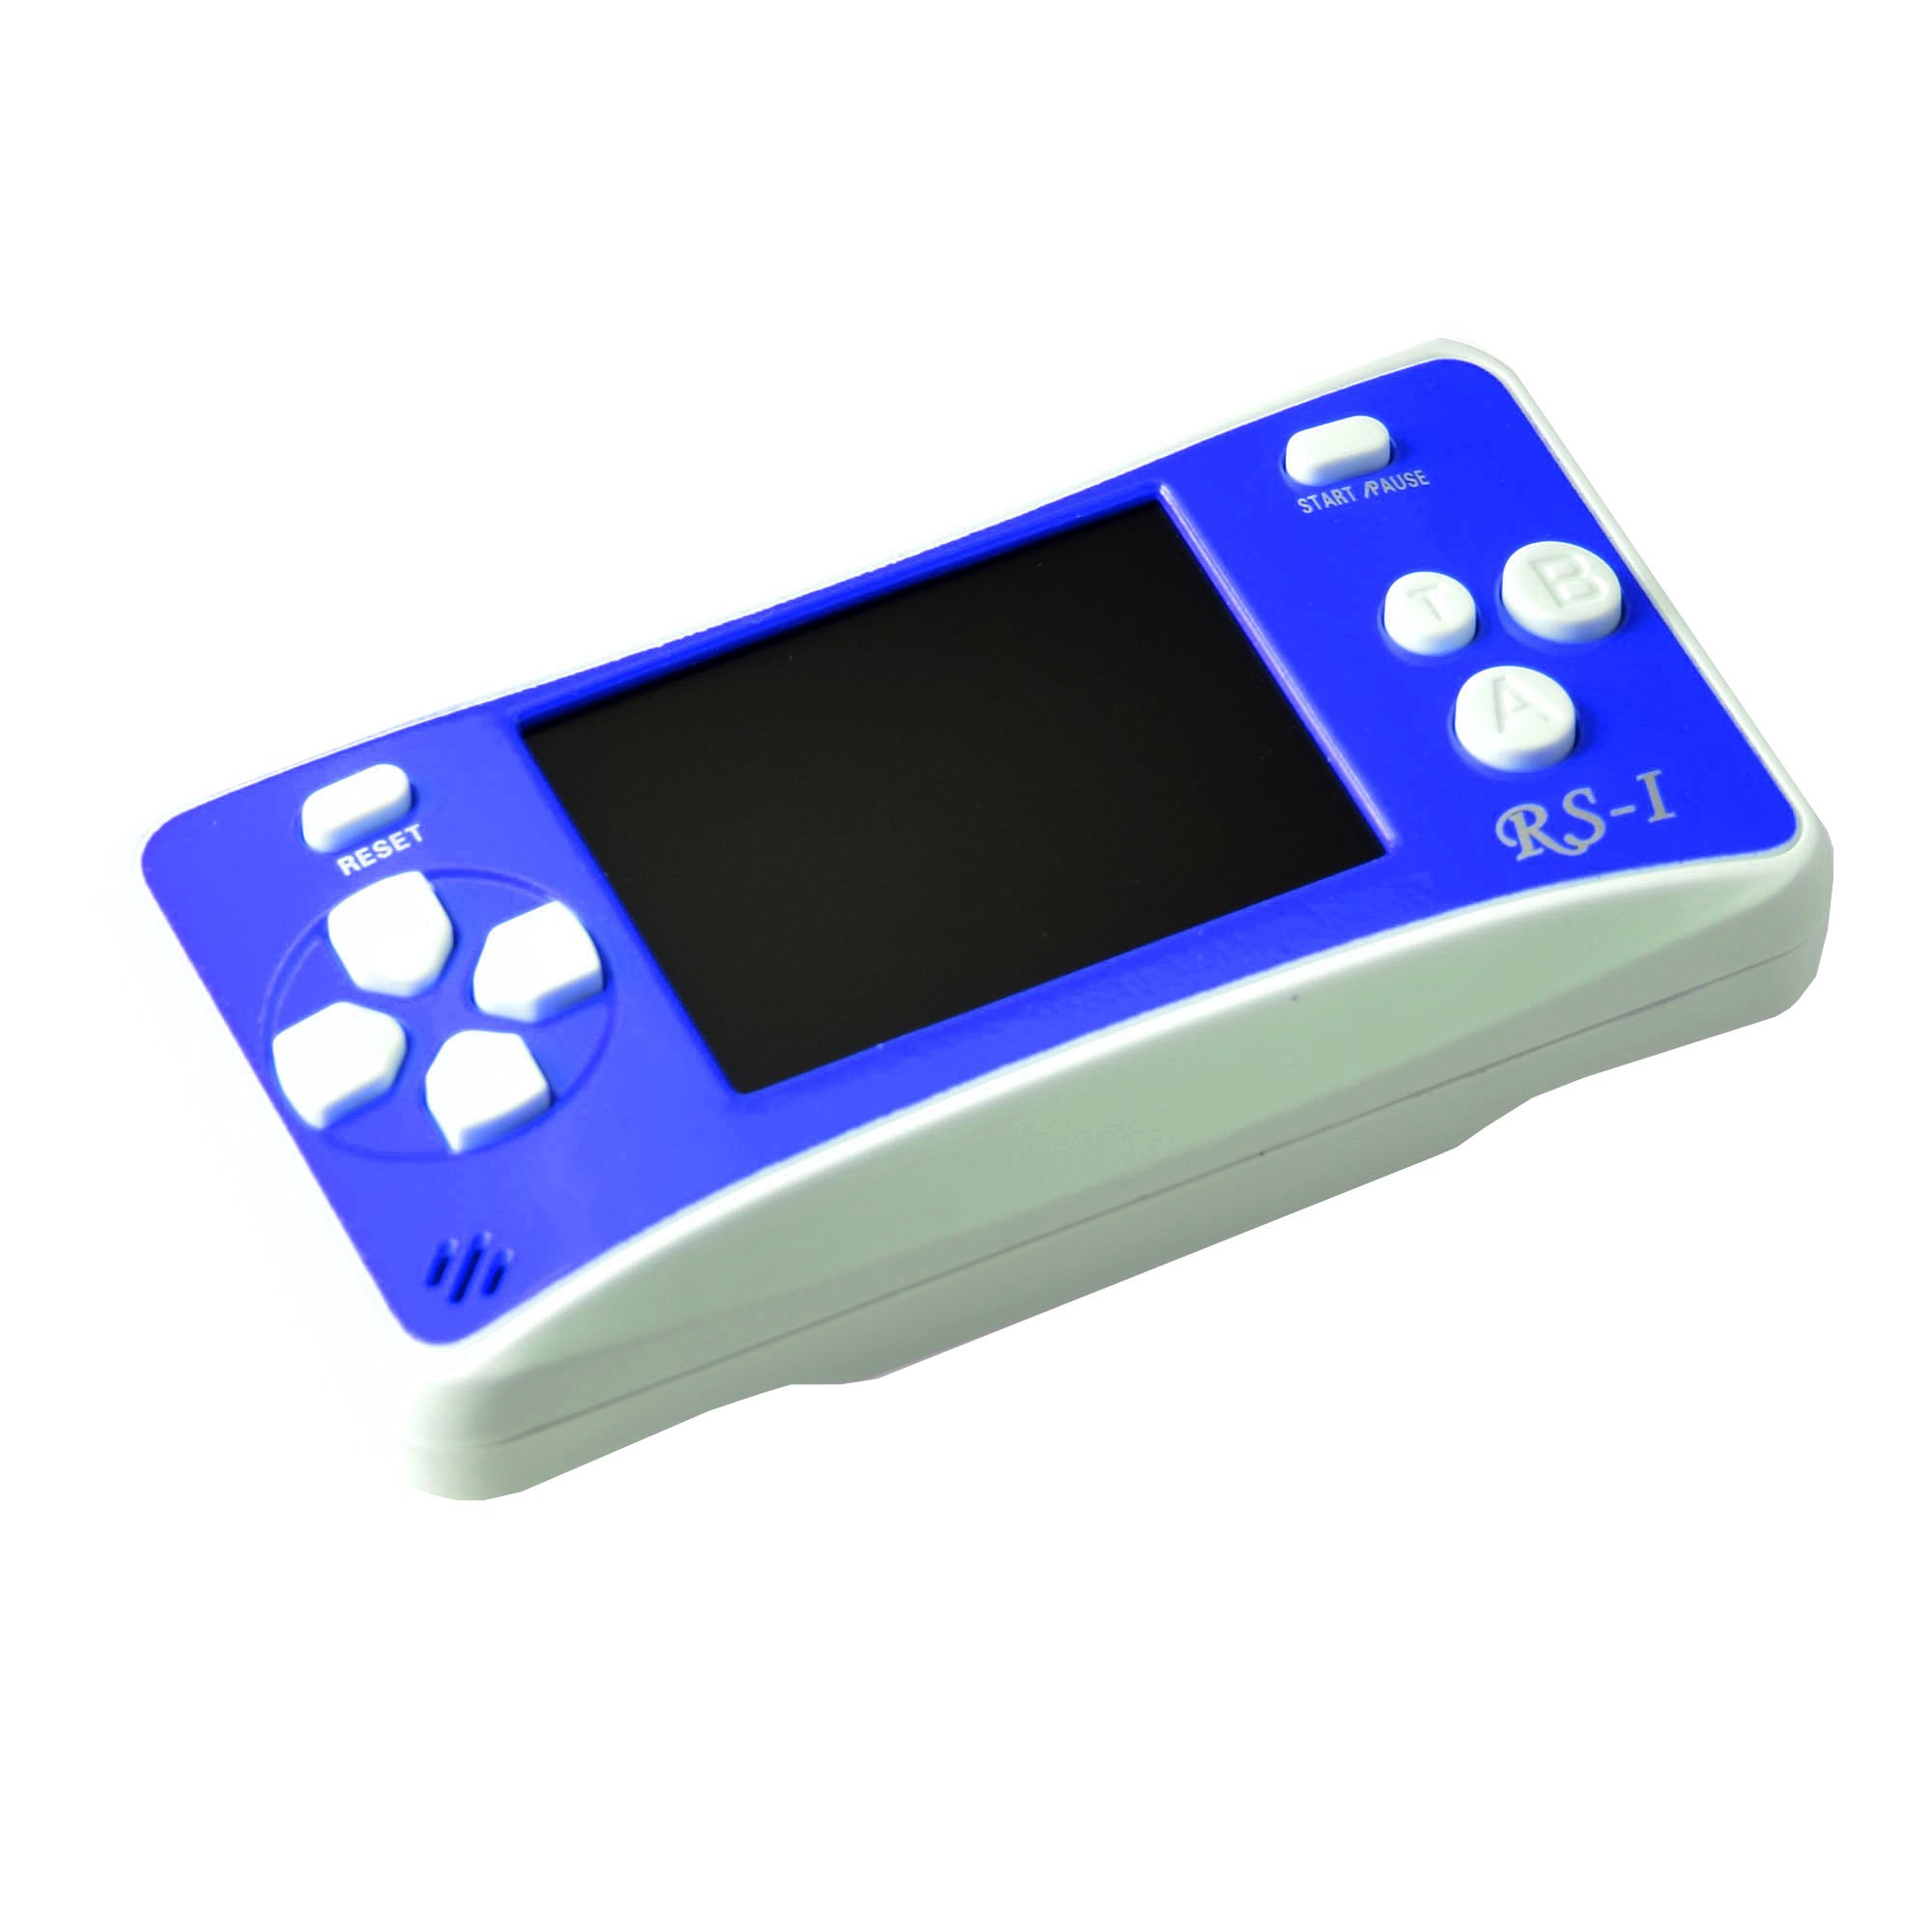 Gam3Gear 3 x AAA Built-in 152 Retro Classic Games 2.5'' LCD Handheld Game Console with Speaker Blue/White by Gam3Gear (Image #2)